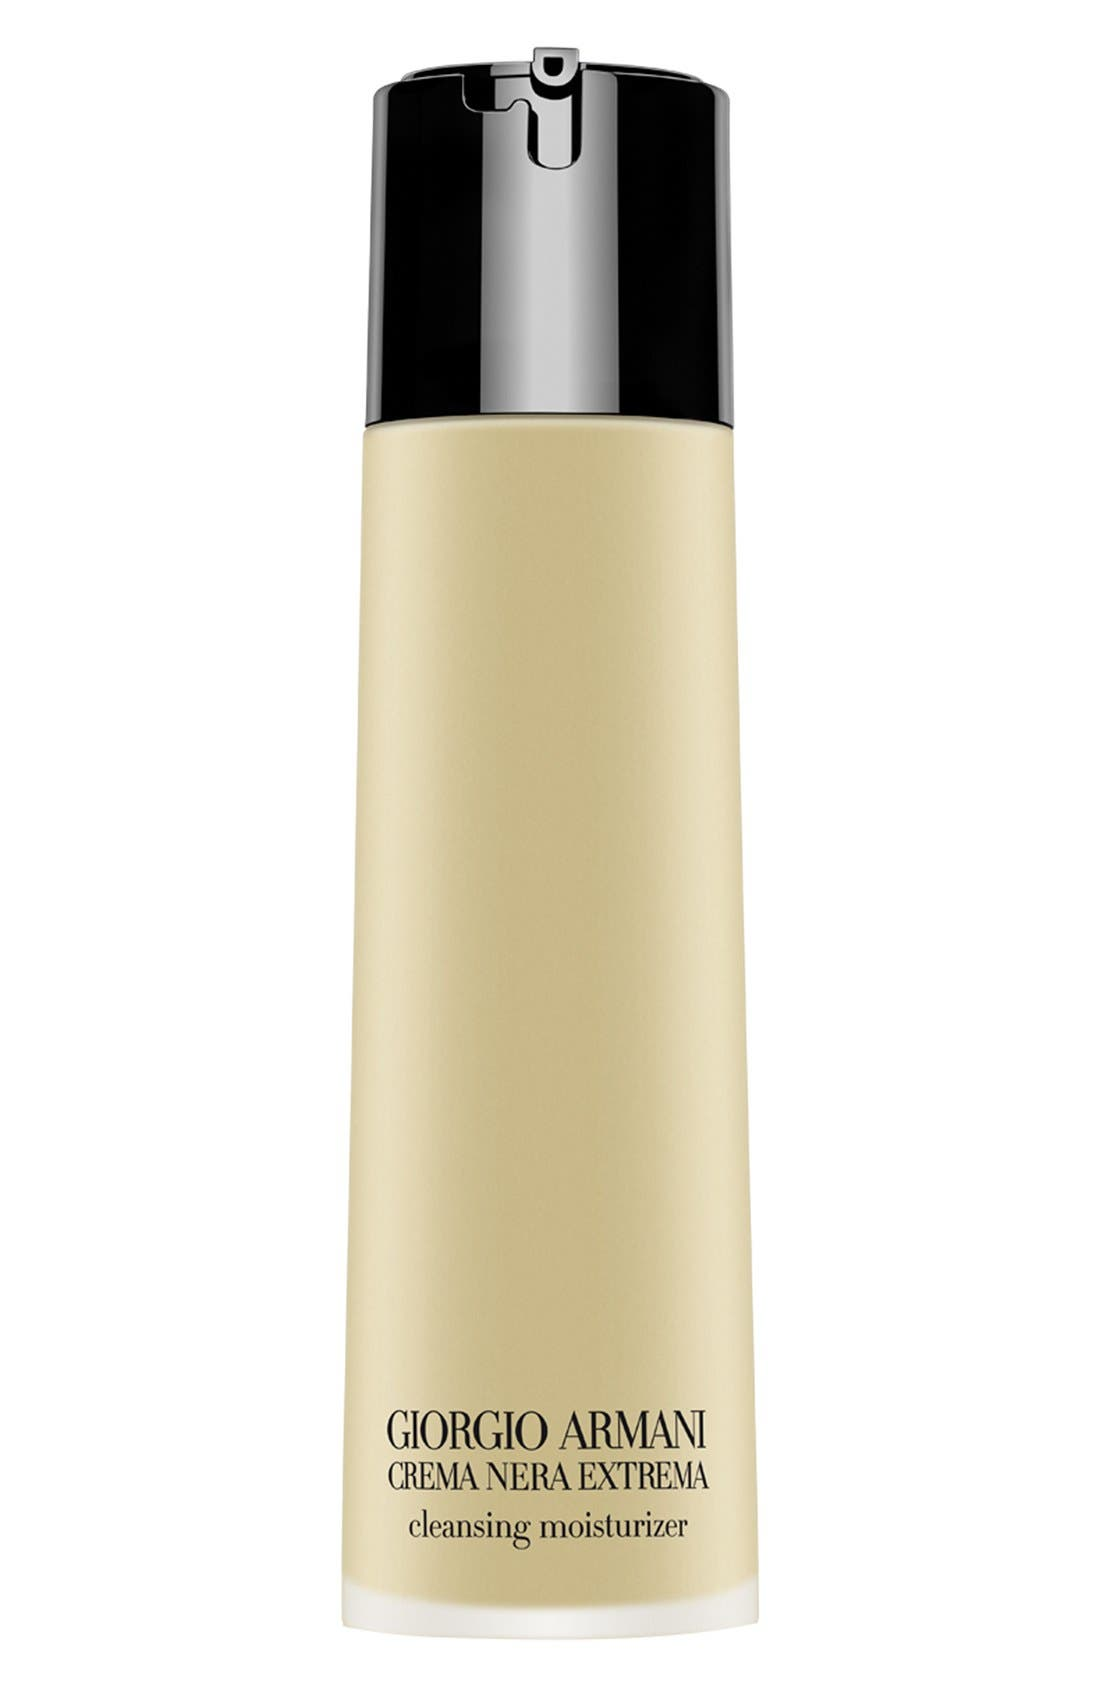 'Crema Nera Extrema' Supreme Balancing Oil-in-Gel Cleansing Moisturizer,                             Main thumbnail 1, color,                             000